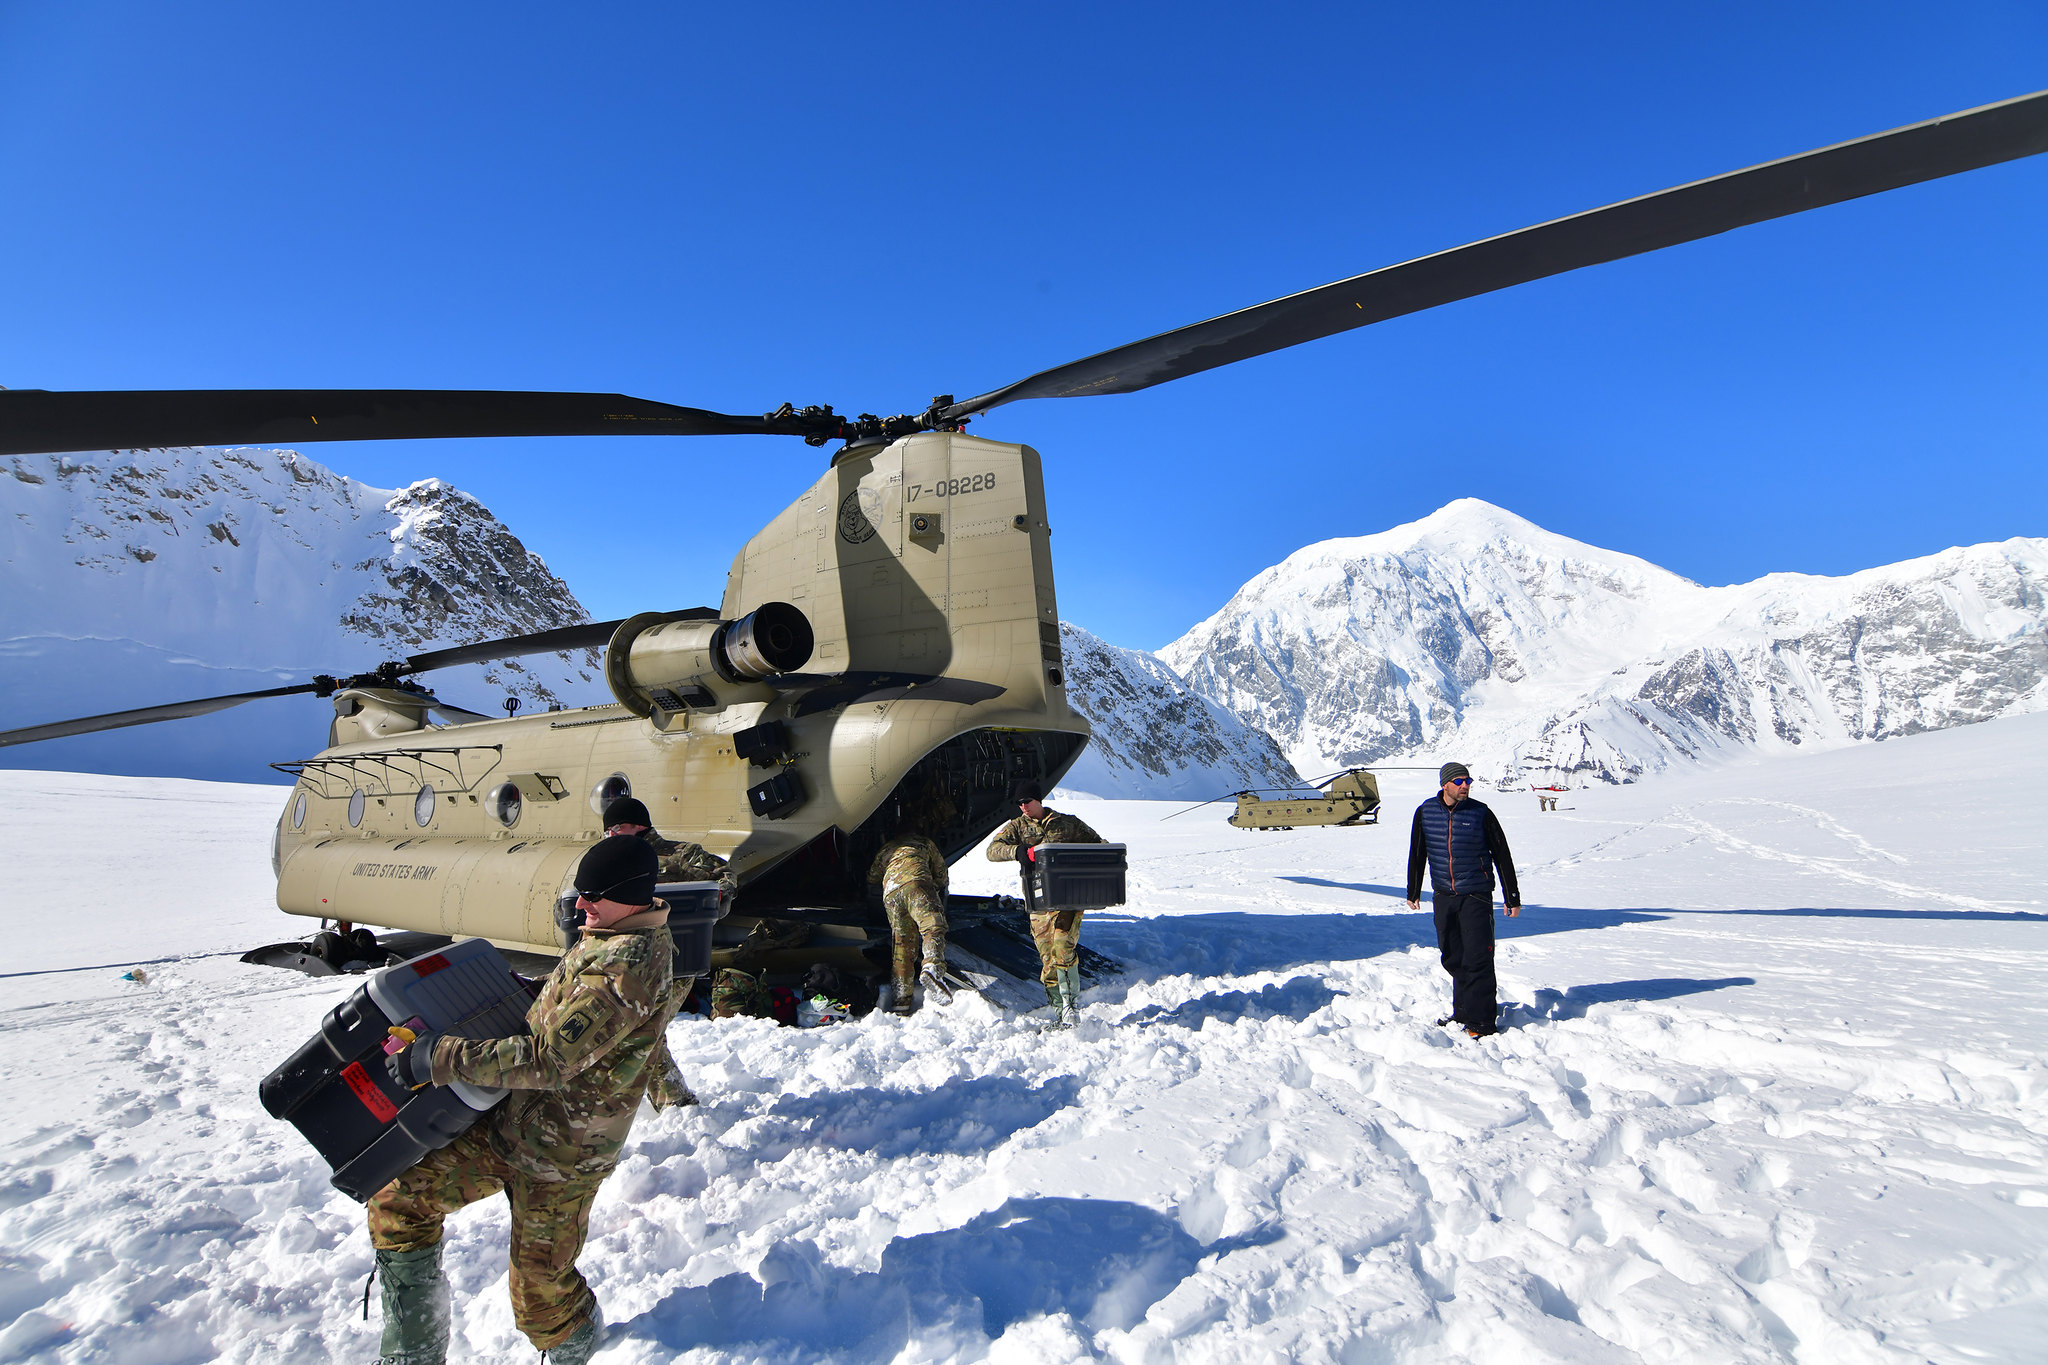 Soldiers from B Company, 1st Battalion, 52nd Aviation Regiment unload equipment and supplies from a pair of CH-47F Chinook helicopters on Kahiltna Glacier, April 22, 2021. Aviators from the unit, also known as the Sugar Bears, traveled from Fort Wainwright to help the National Park Service get the necessary equipment and supplies in place for the base camp at the 7,200-foot level of Kahiltna Glacier for the 2021 climbing season on Denali, the tallest mountain in North America. (John Pennell/Army)